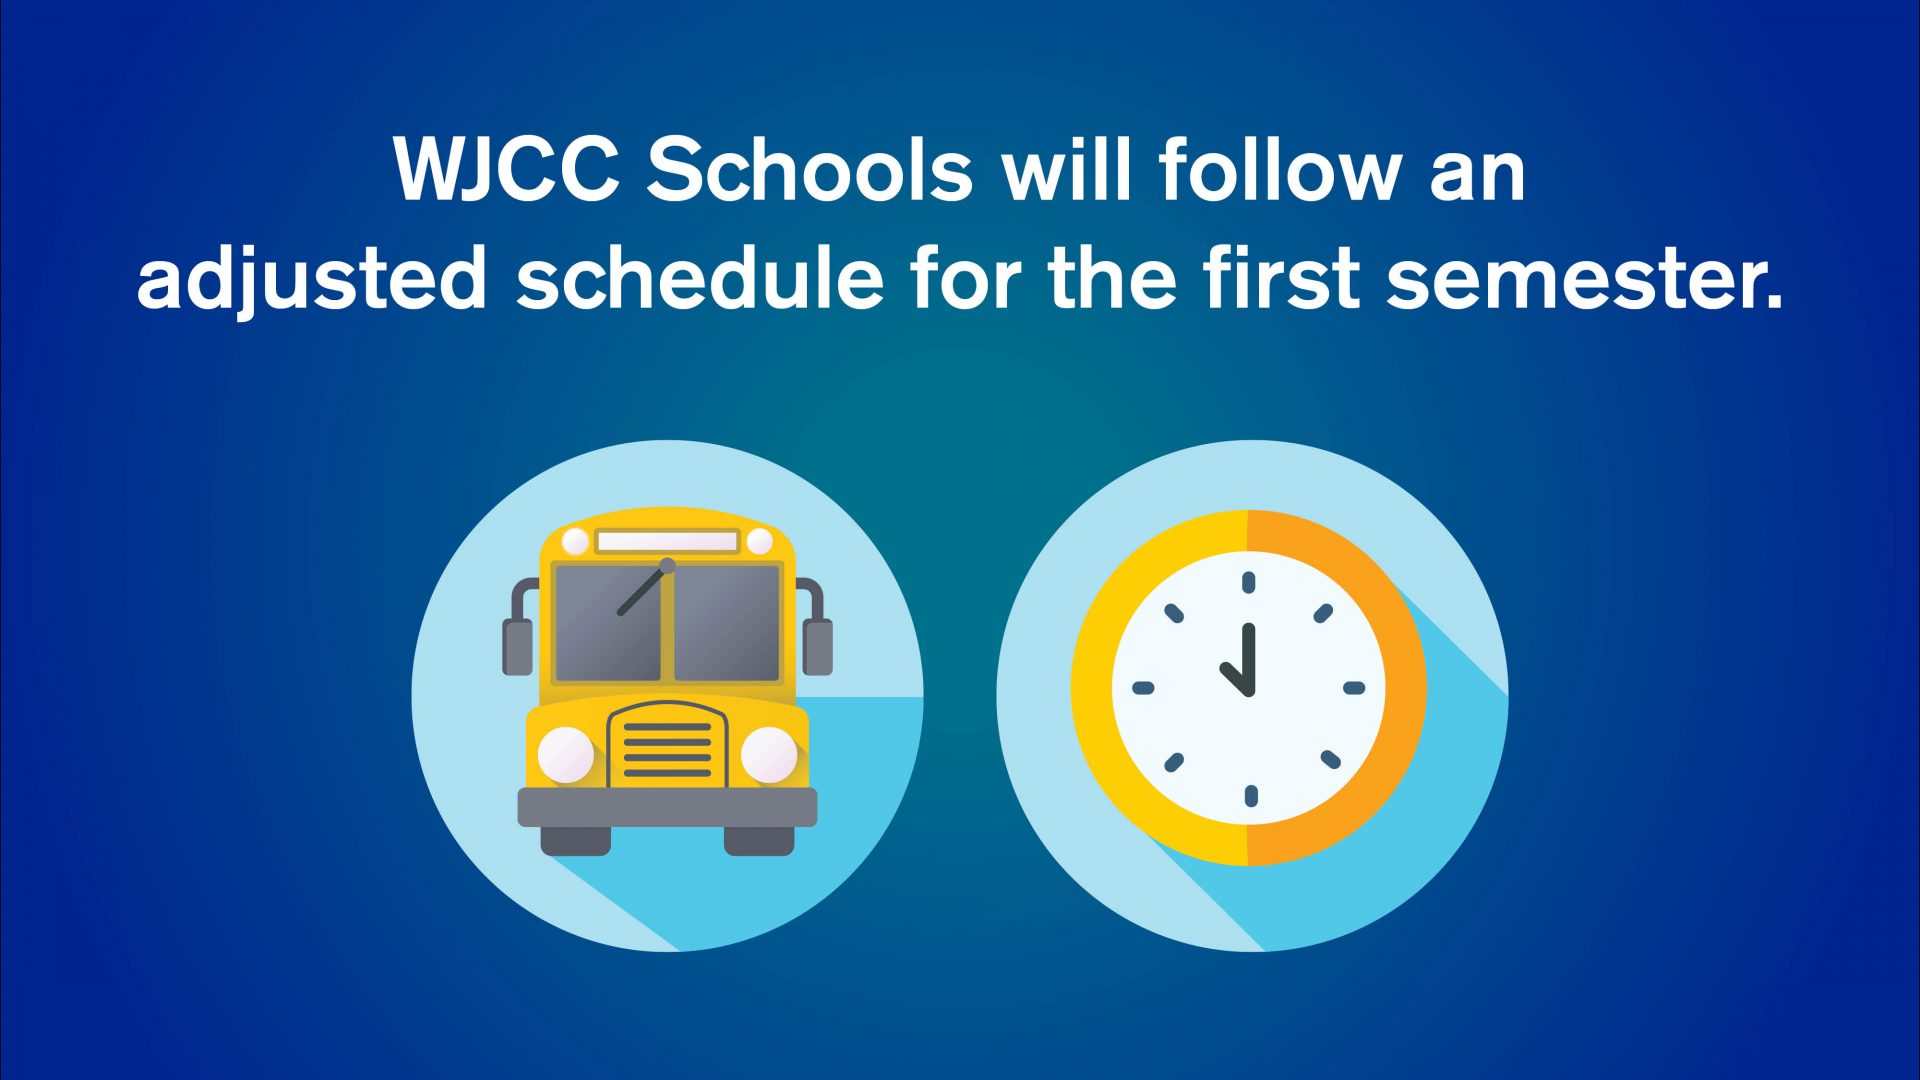 """Icons of a bus and clock with the text, """"WJCC Schools will follow an adjusted schedule for the first semester."""""""